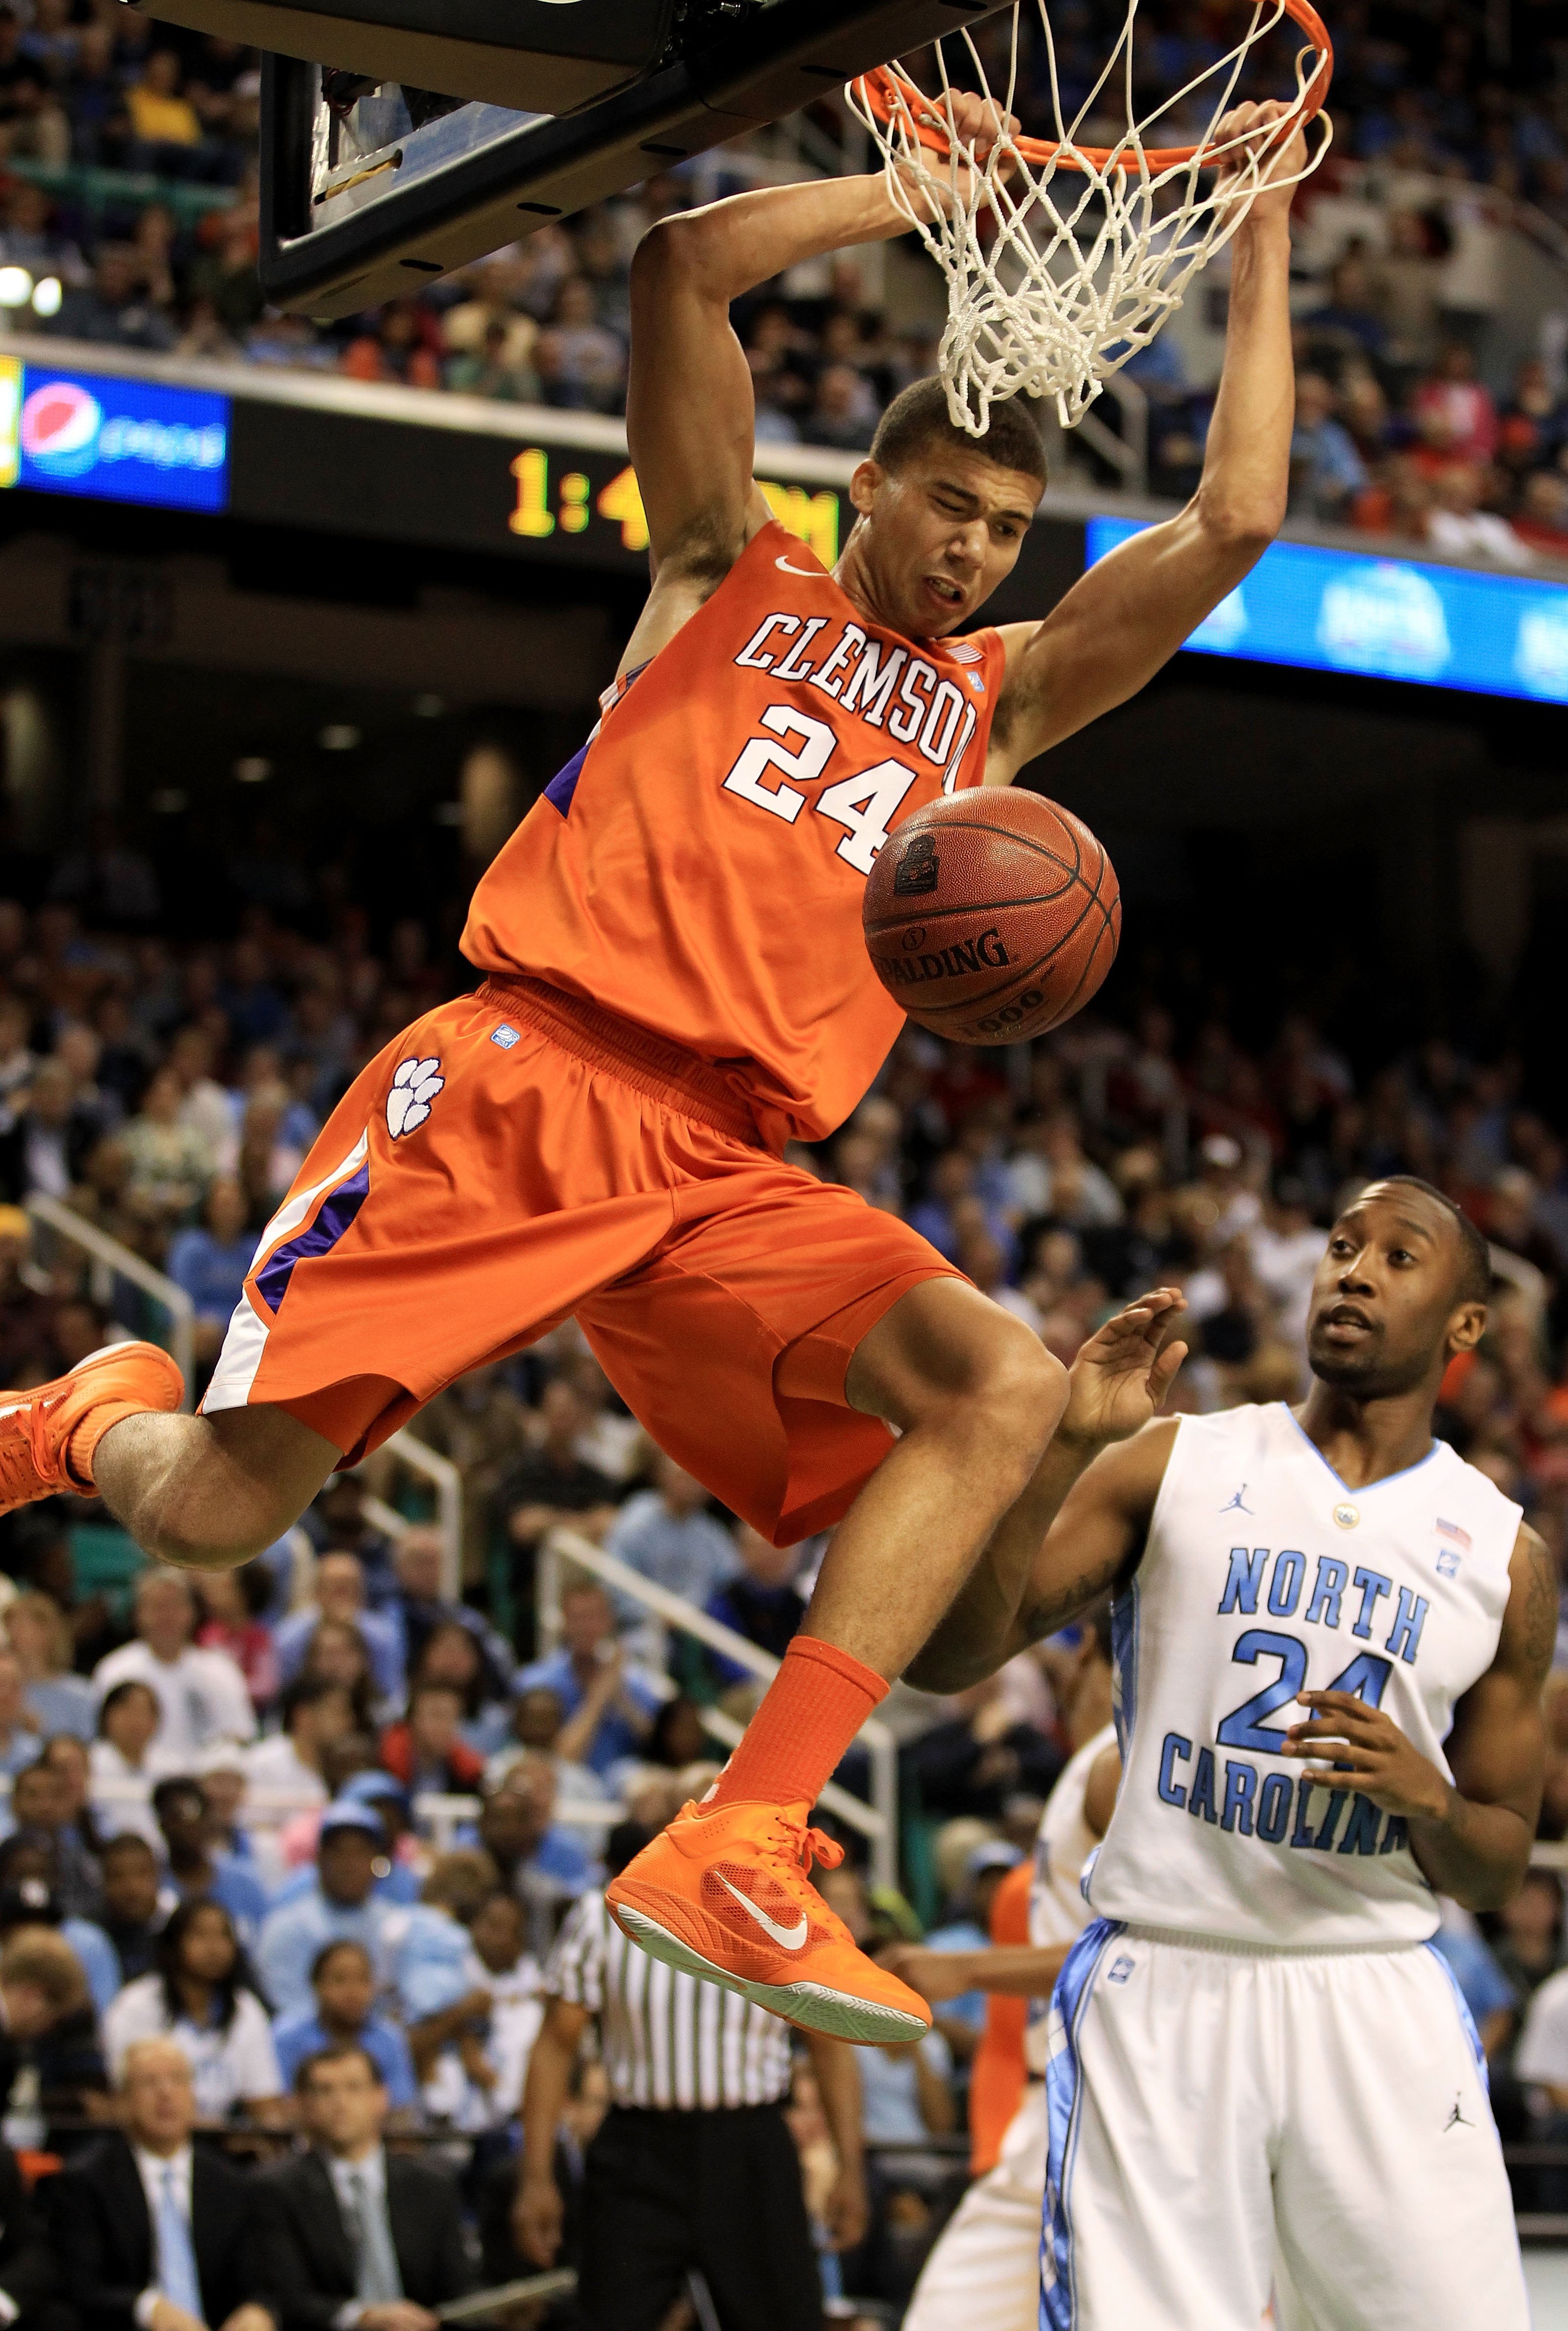 GREENSBORO, NC - MARCH 12:  Milton Jennings #24 of the Clemson Tigers shoots against Justin Watts #24 of the North Carolina Tar Heels during the first half in the semifinals of the 2011 ACC men's basketball tournament at the Greensboro Coliseum on March 1